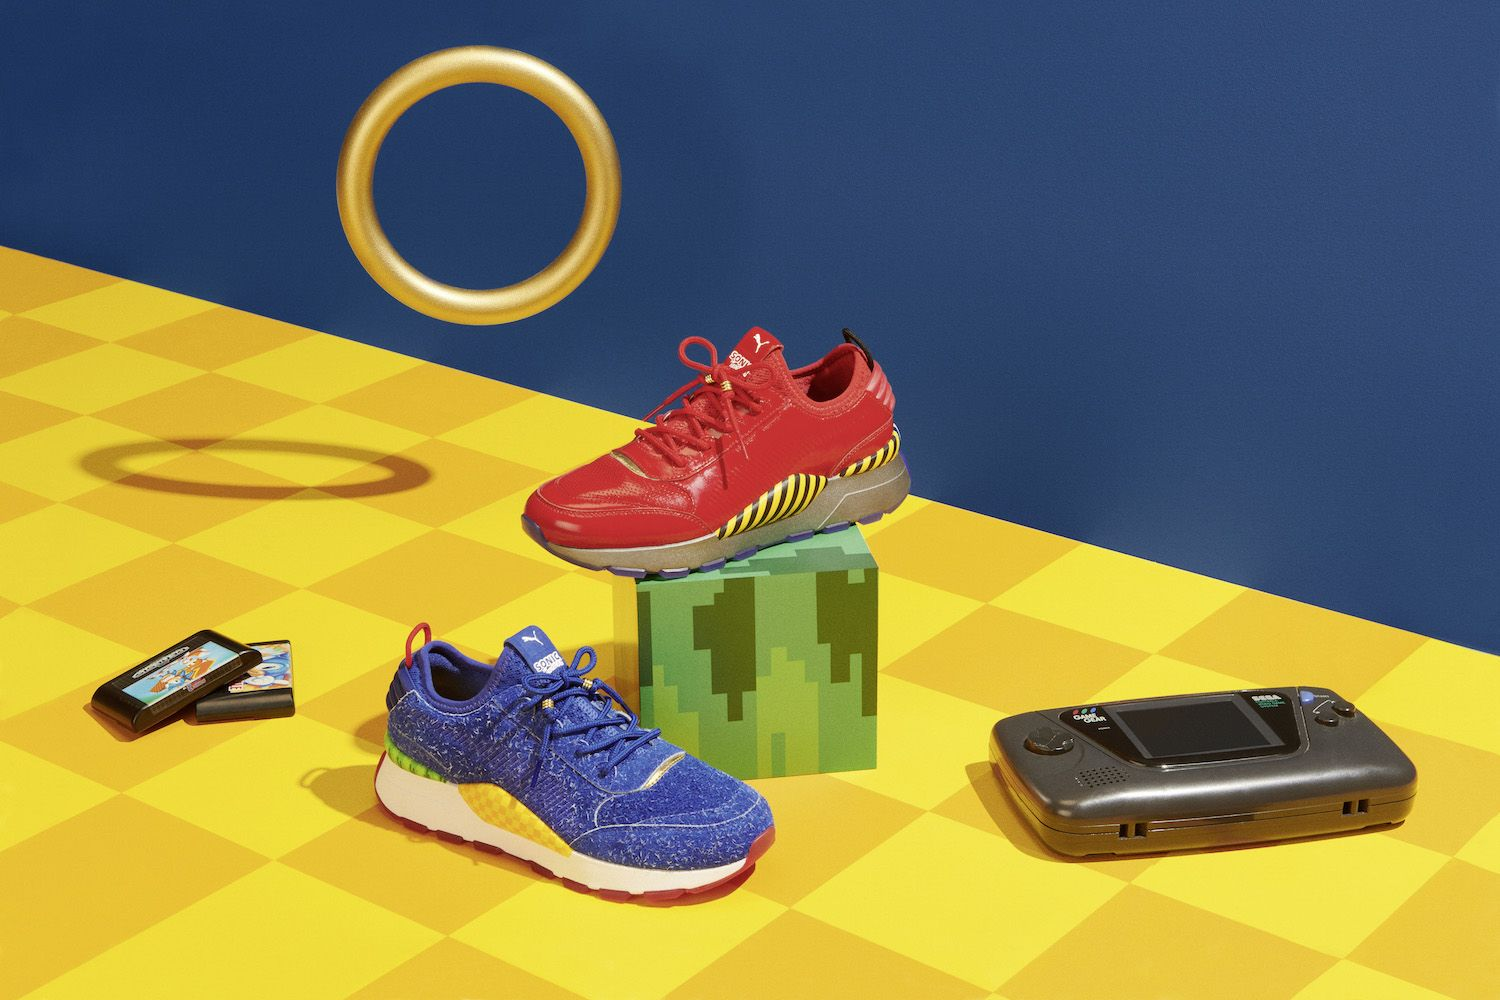 Puma and Sega Announce Sonic RS 0 and Dr. Eggman Sneakers